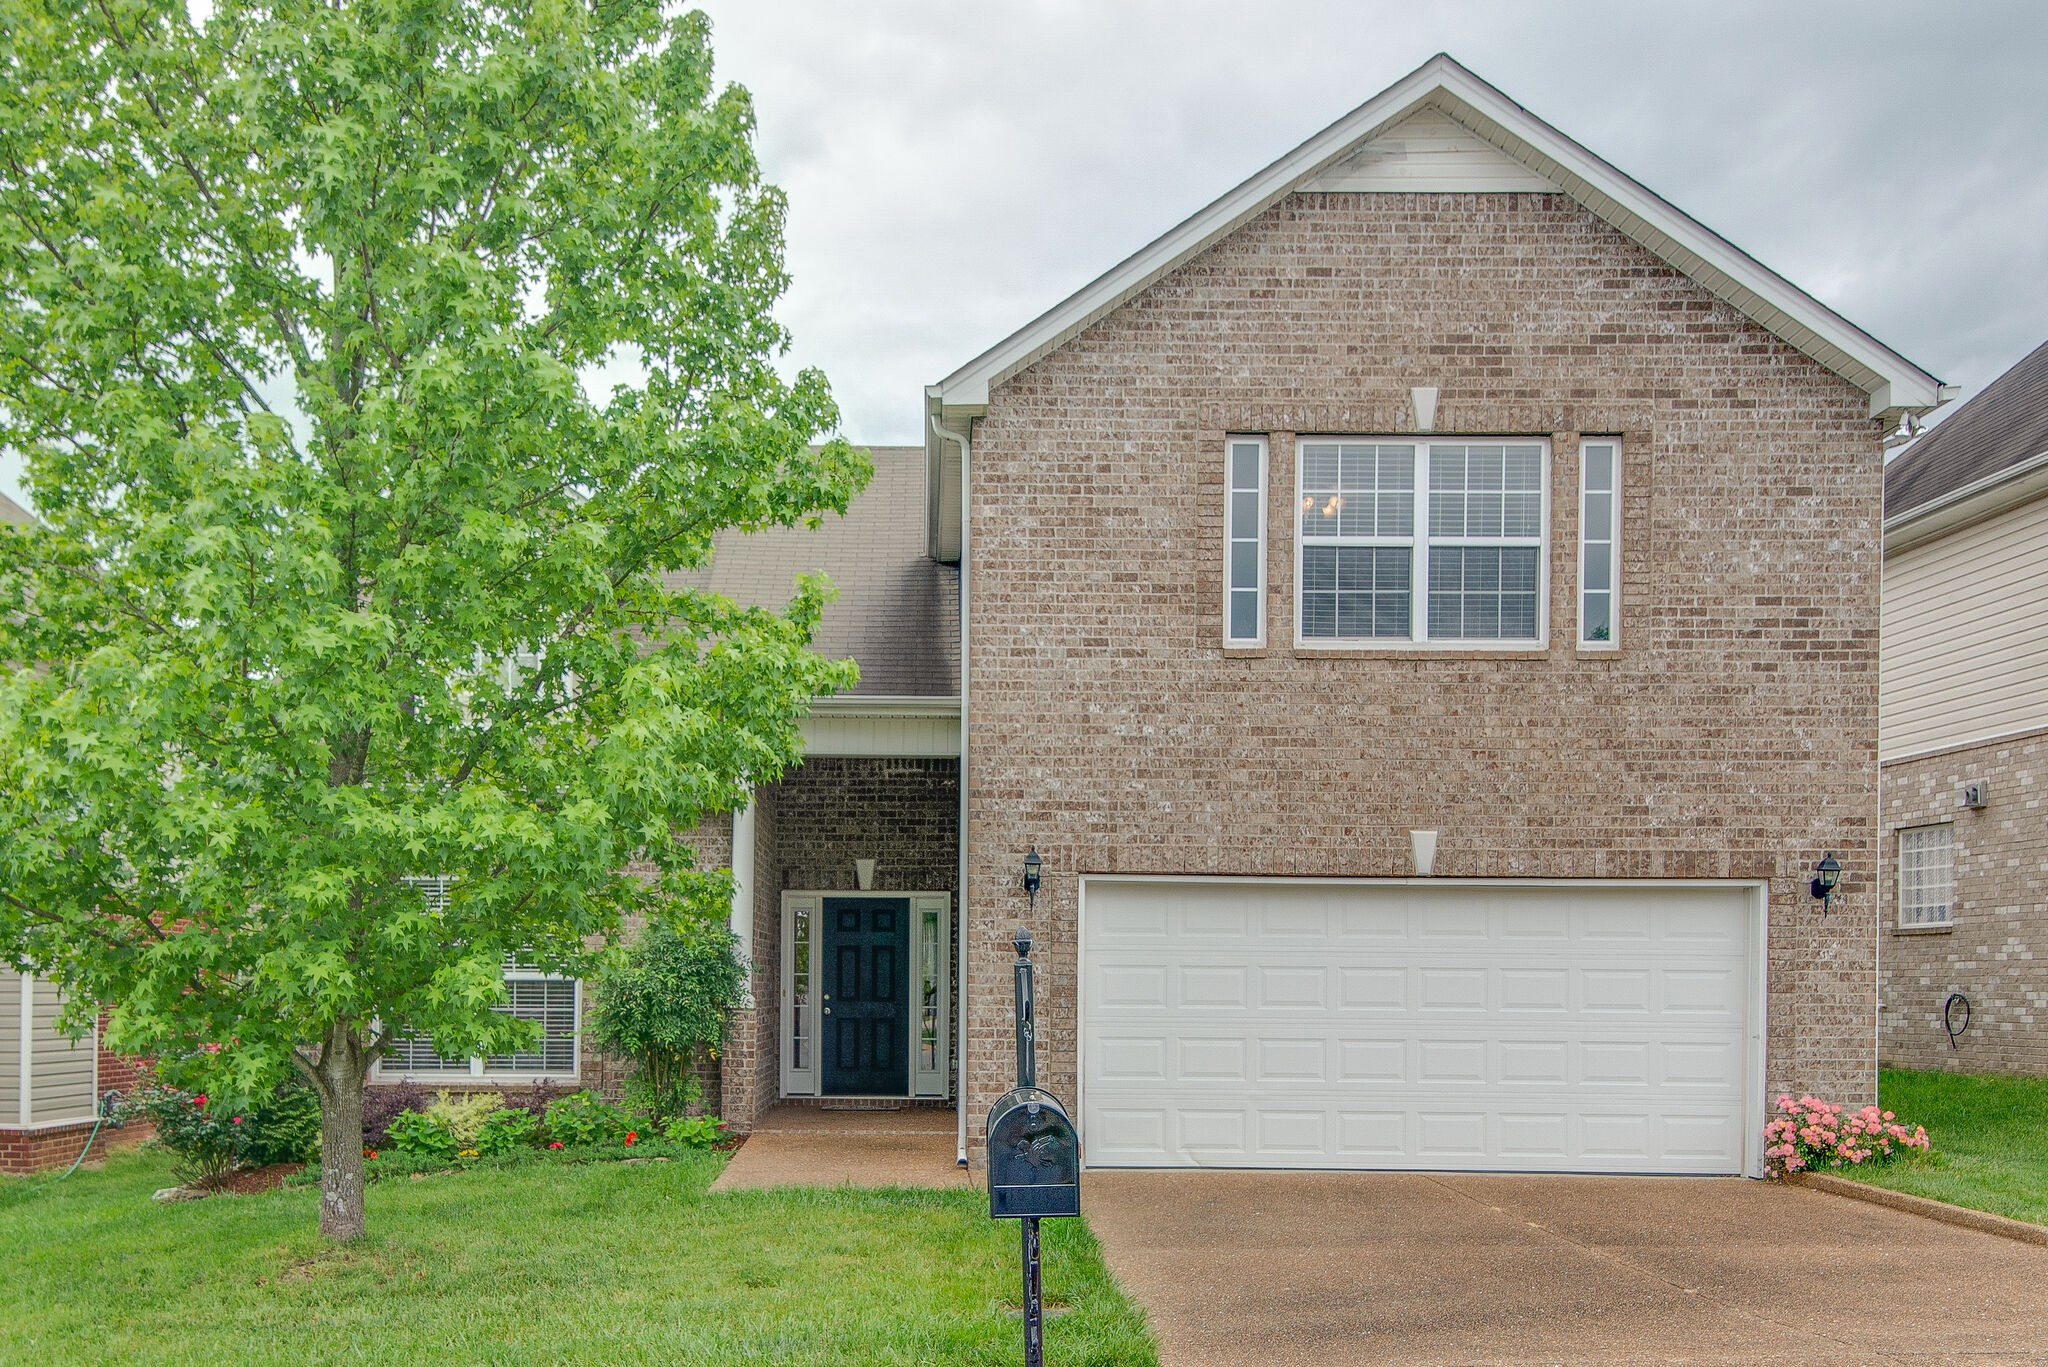 One of Nashville-Antioch 3 Bedroom Homes for Sale at 936 Morning Rd